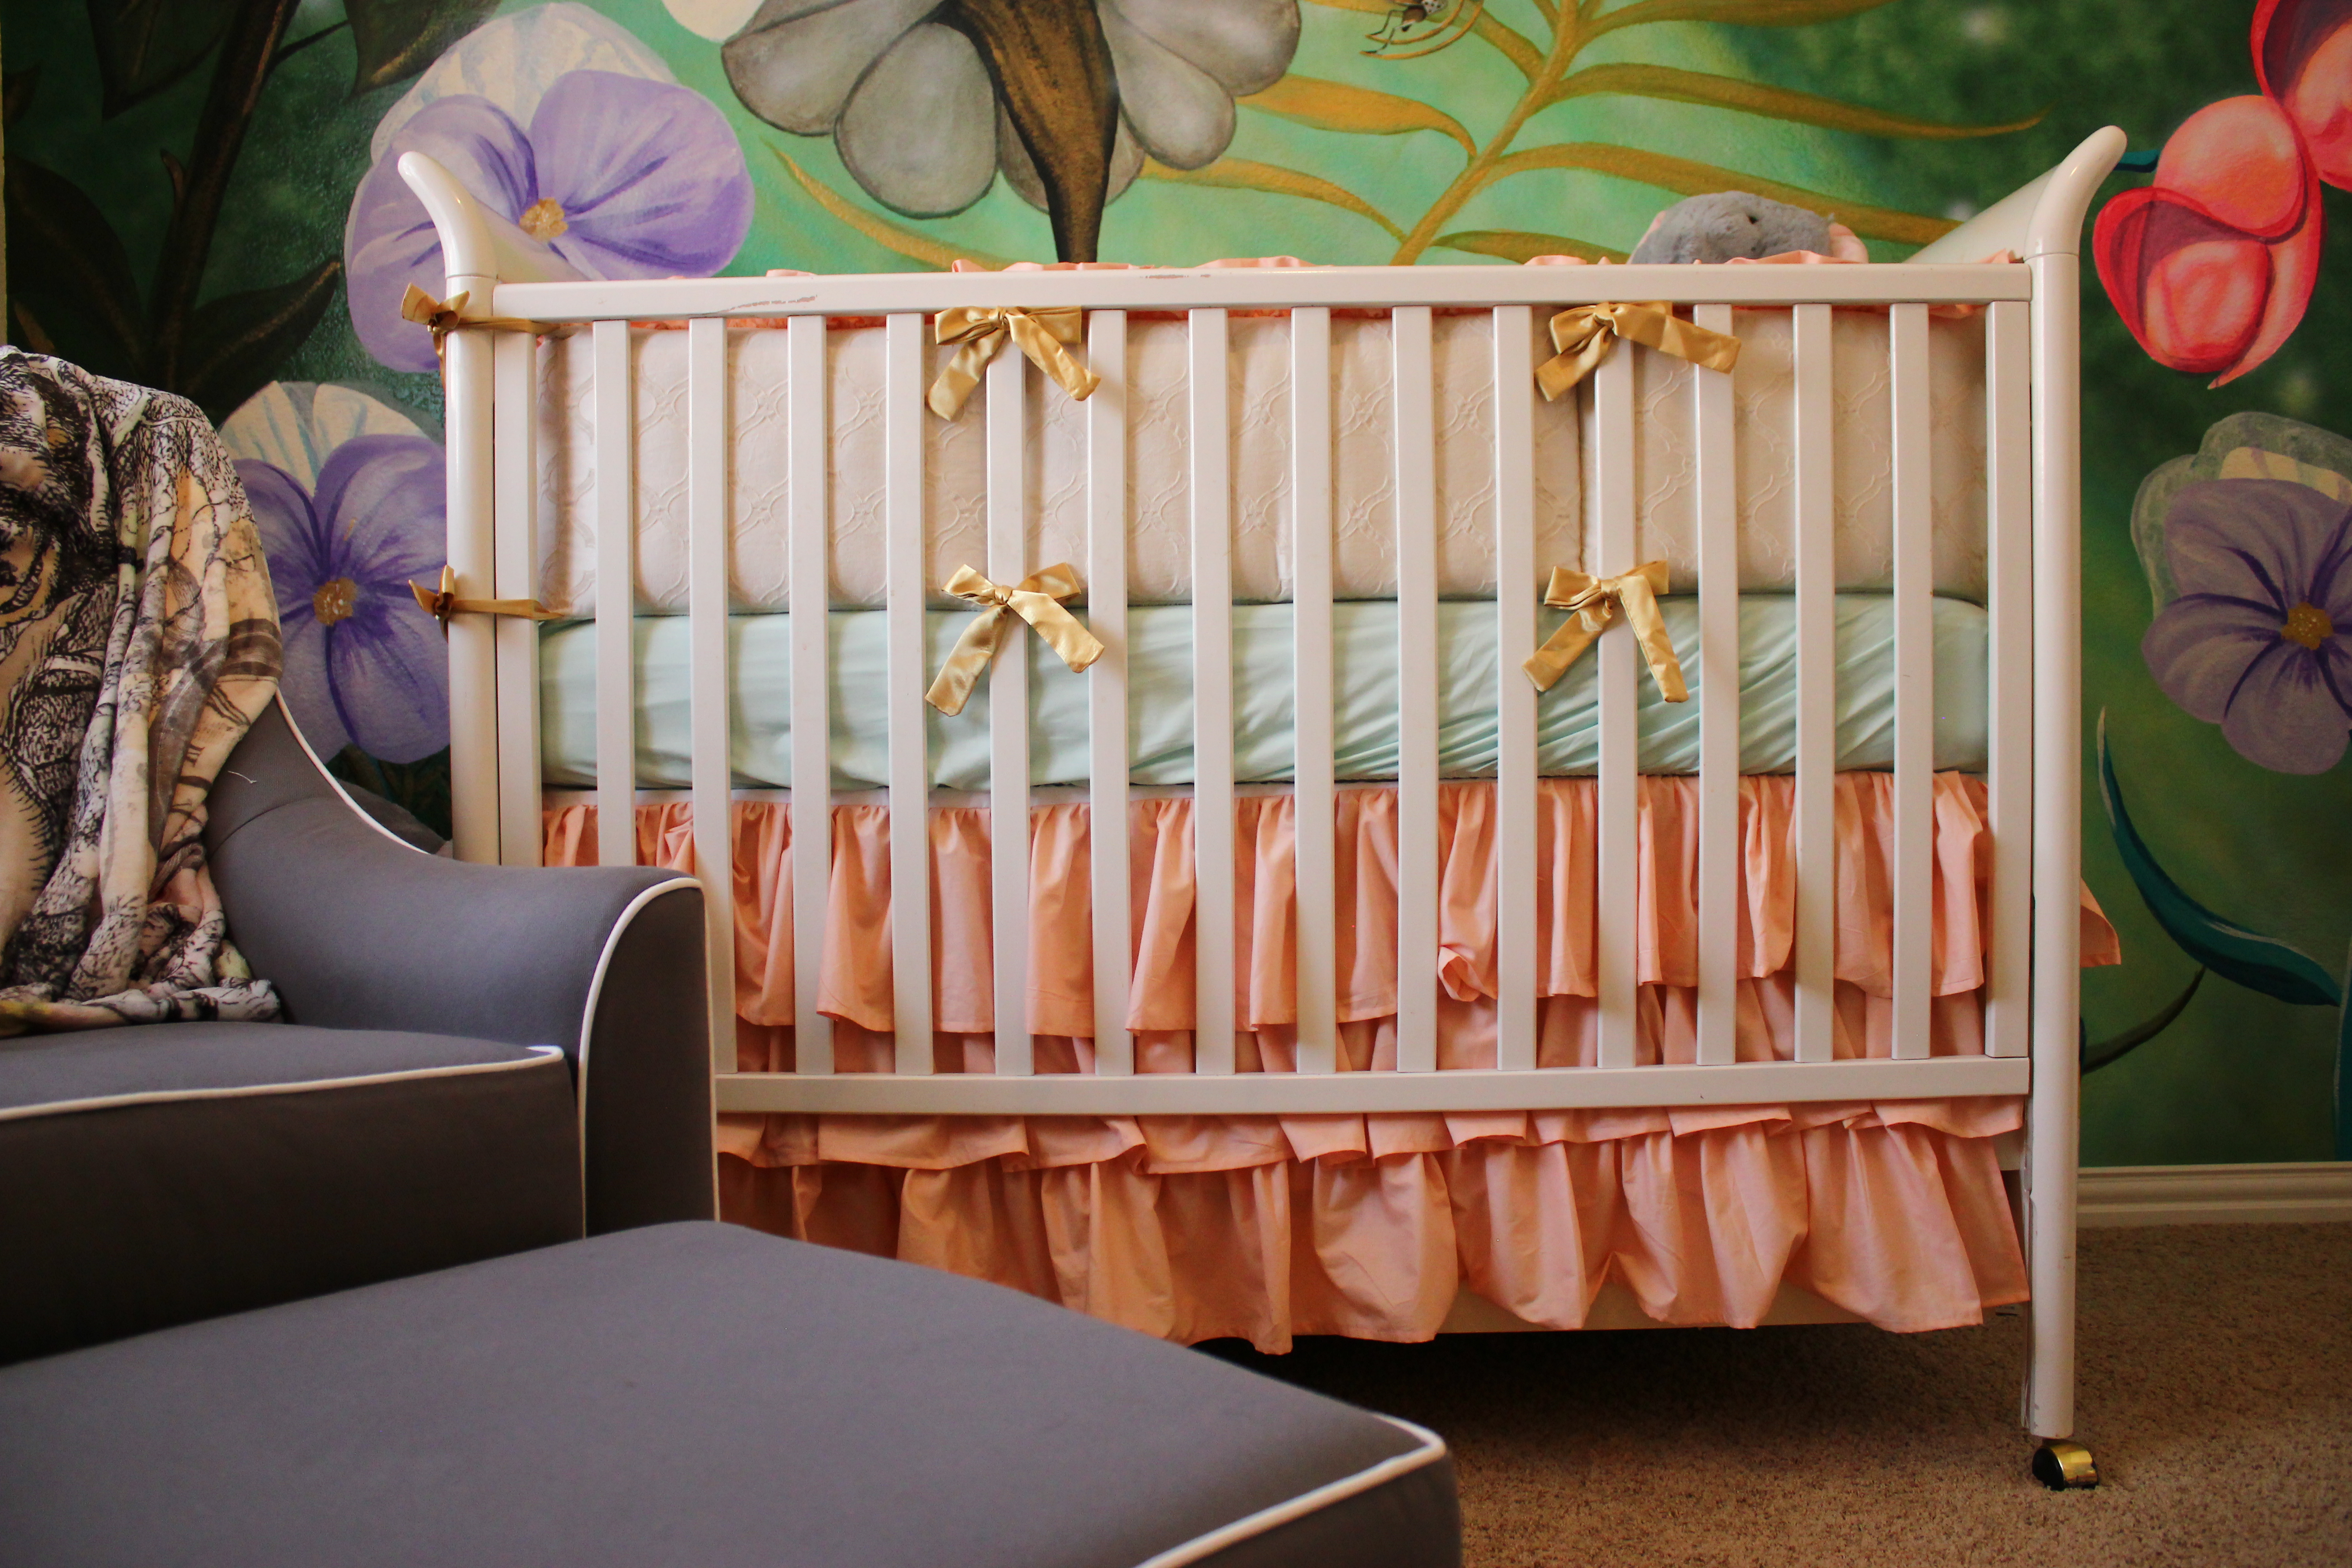 Alice in wonderland nursery kayliejay designs this beautiful mural on her crib wall these oversized flowers and details like the rockinghorse fly make you feel like youre a part of alices garden amipublicfo Images